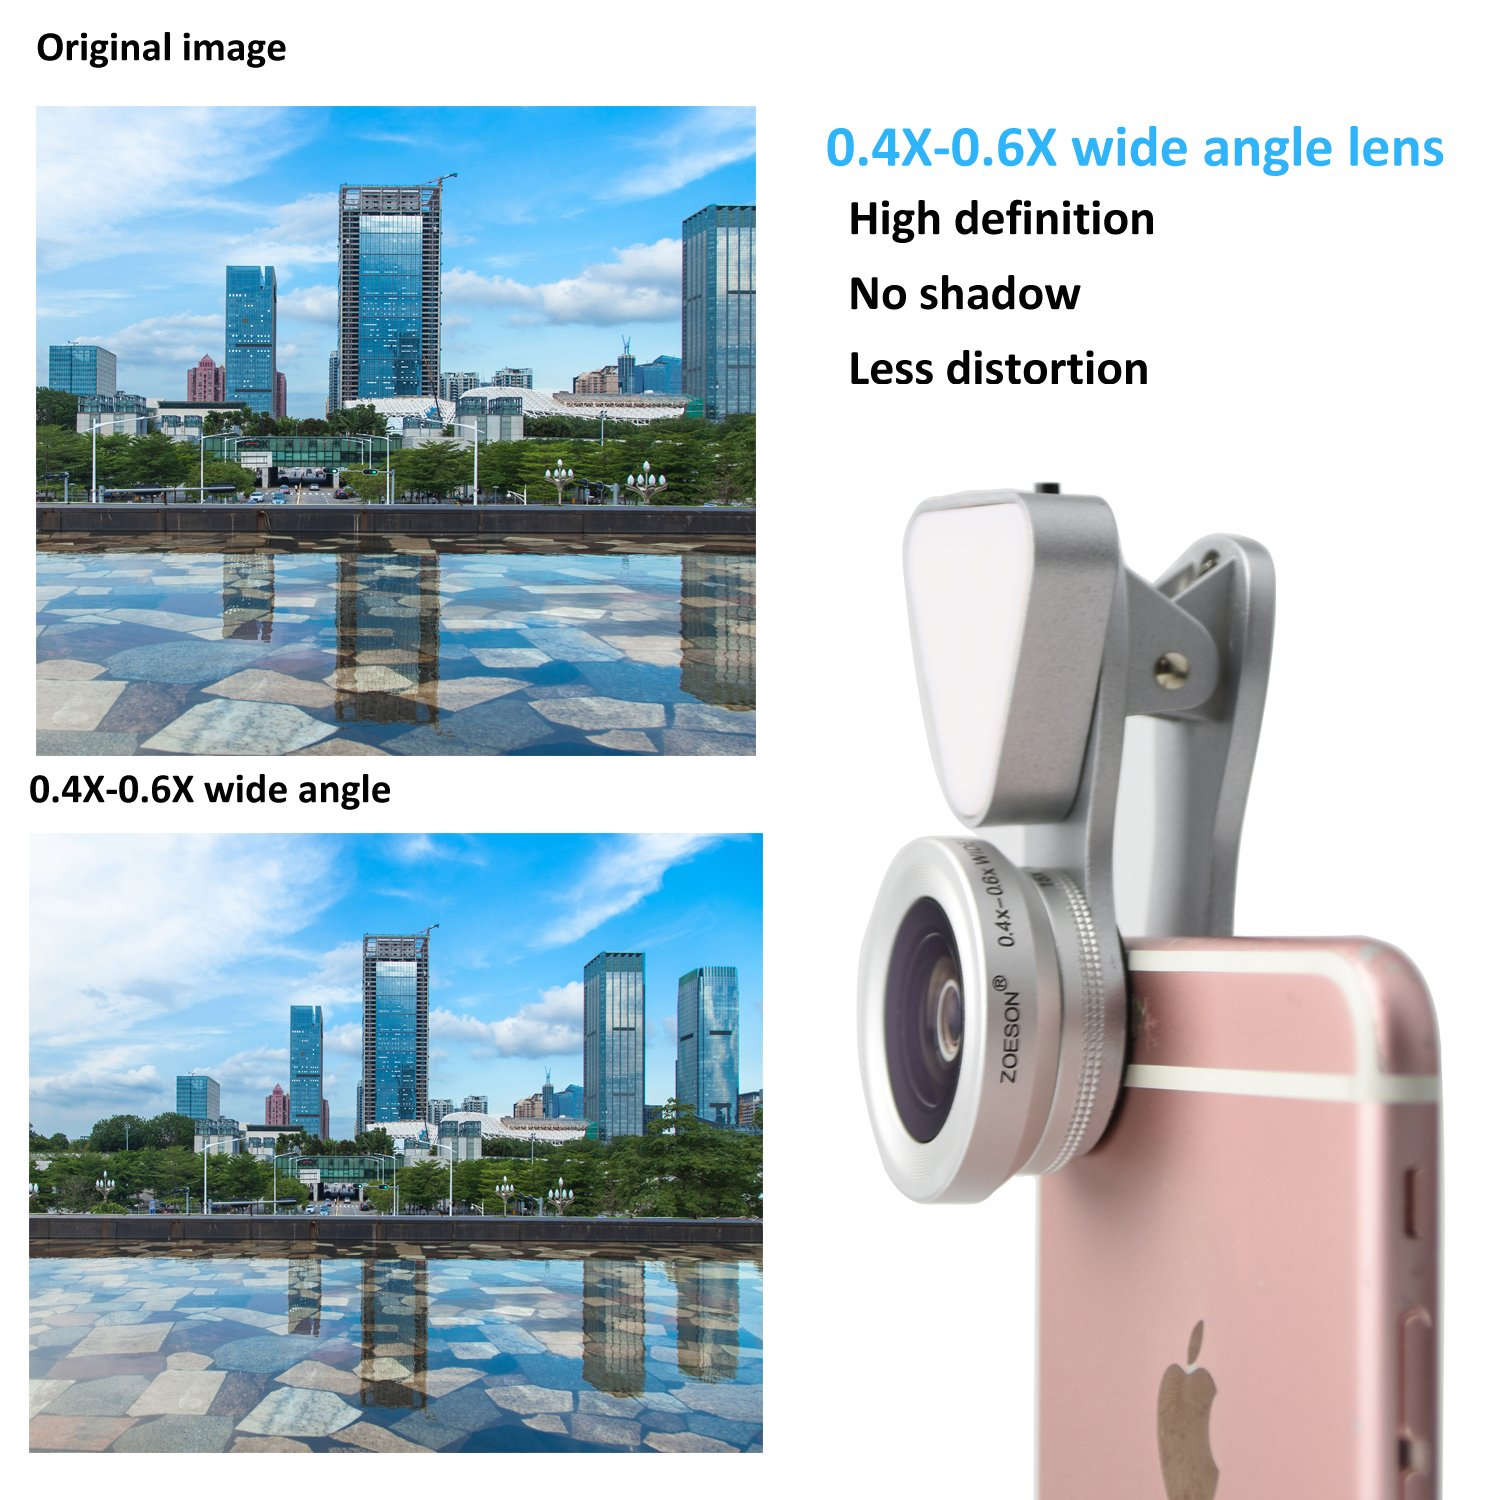 Zoeson 3 in 1 Flash light Plus 15 X Macro Lens Plus 0.4-0.6 x Super Wide Angle Lens Galaxy /& Most Smartphones Rose gold Clip on Cell Phone Lens Camera Lens Kits for Iphone 6s 5s 6